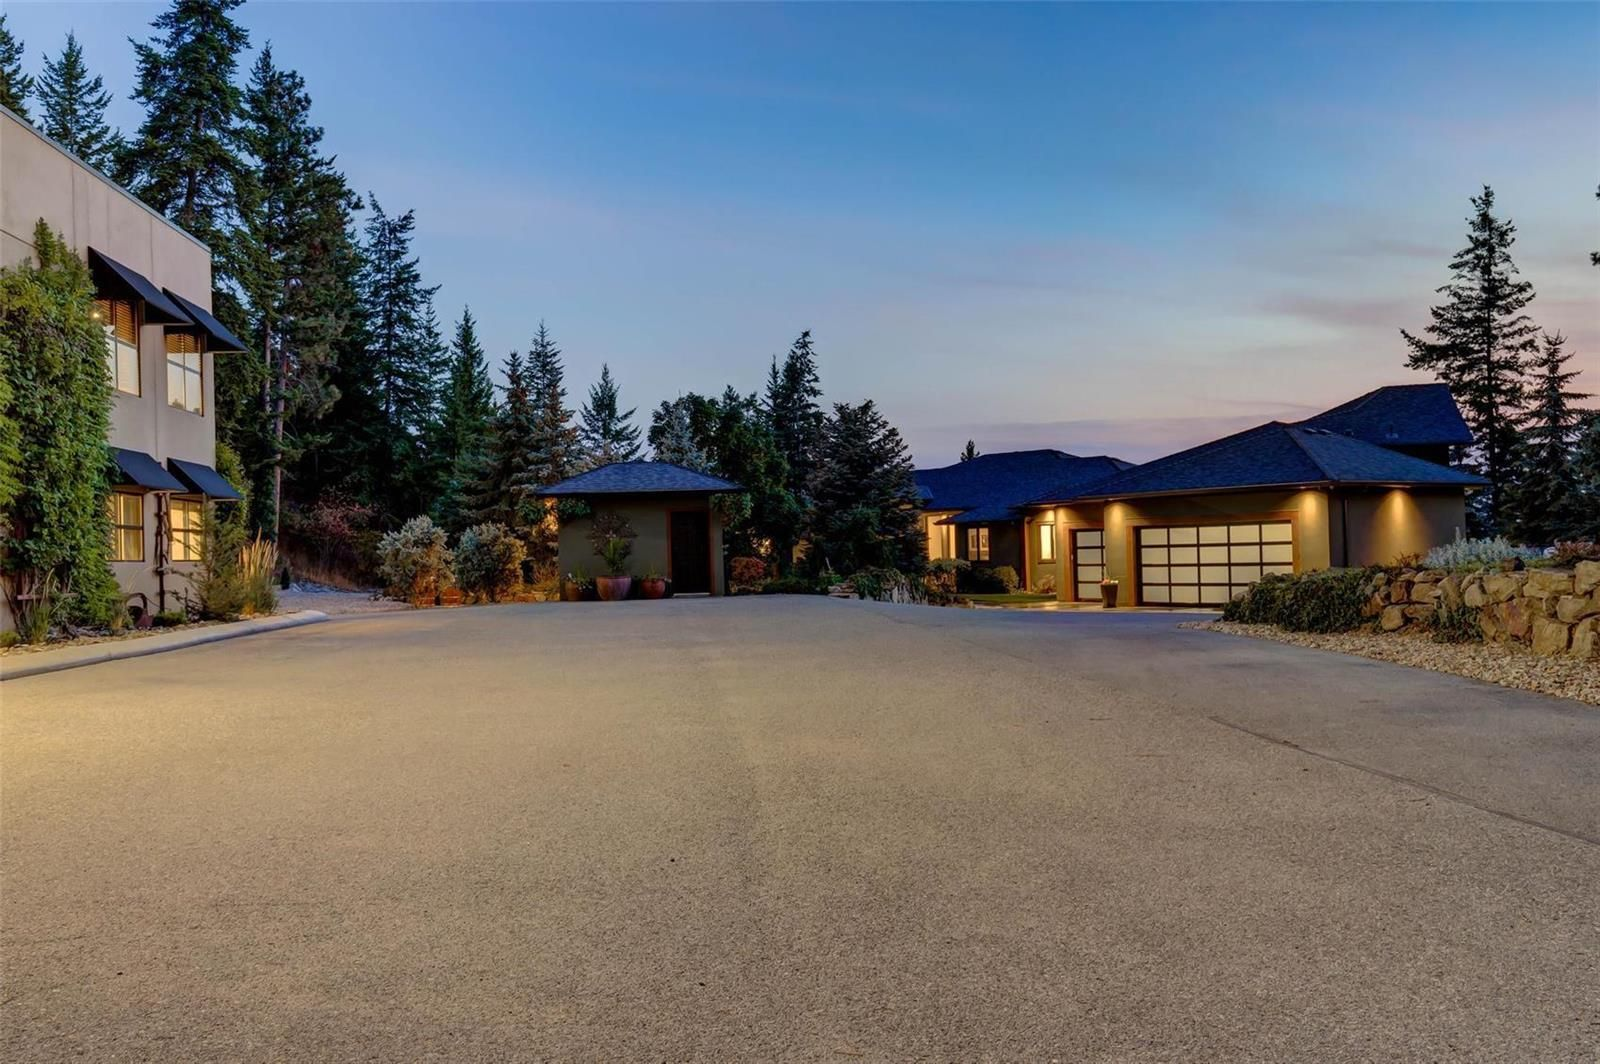 Main Photo: 5757 Upper Booth Road, in Kelowna: House for sale : MLS®# 10239986